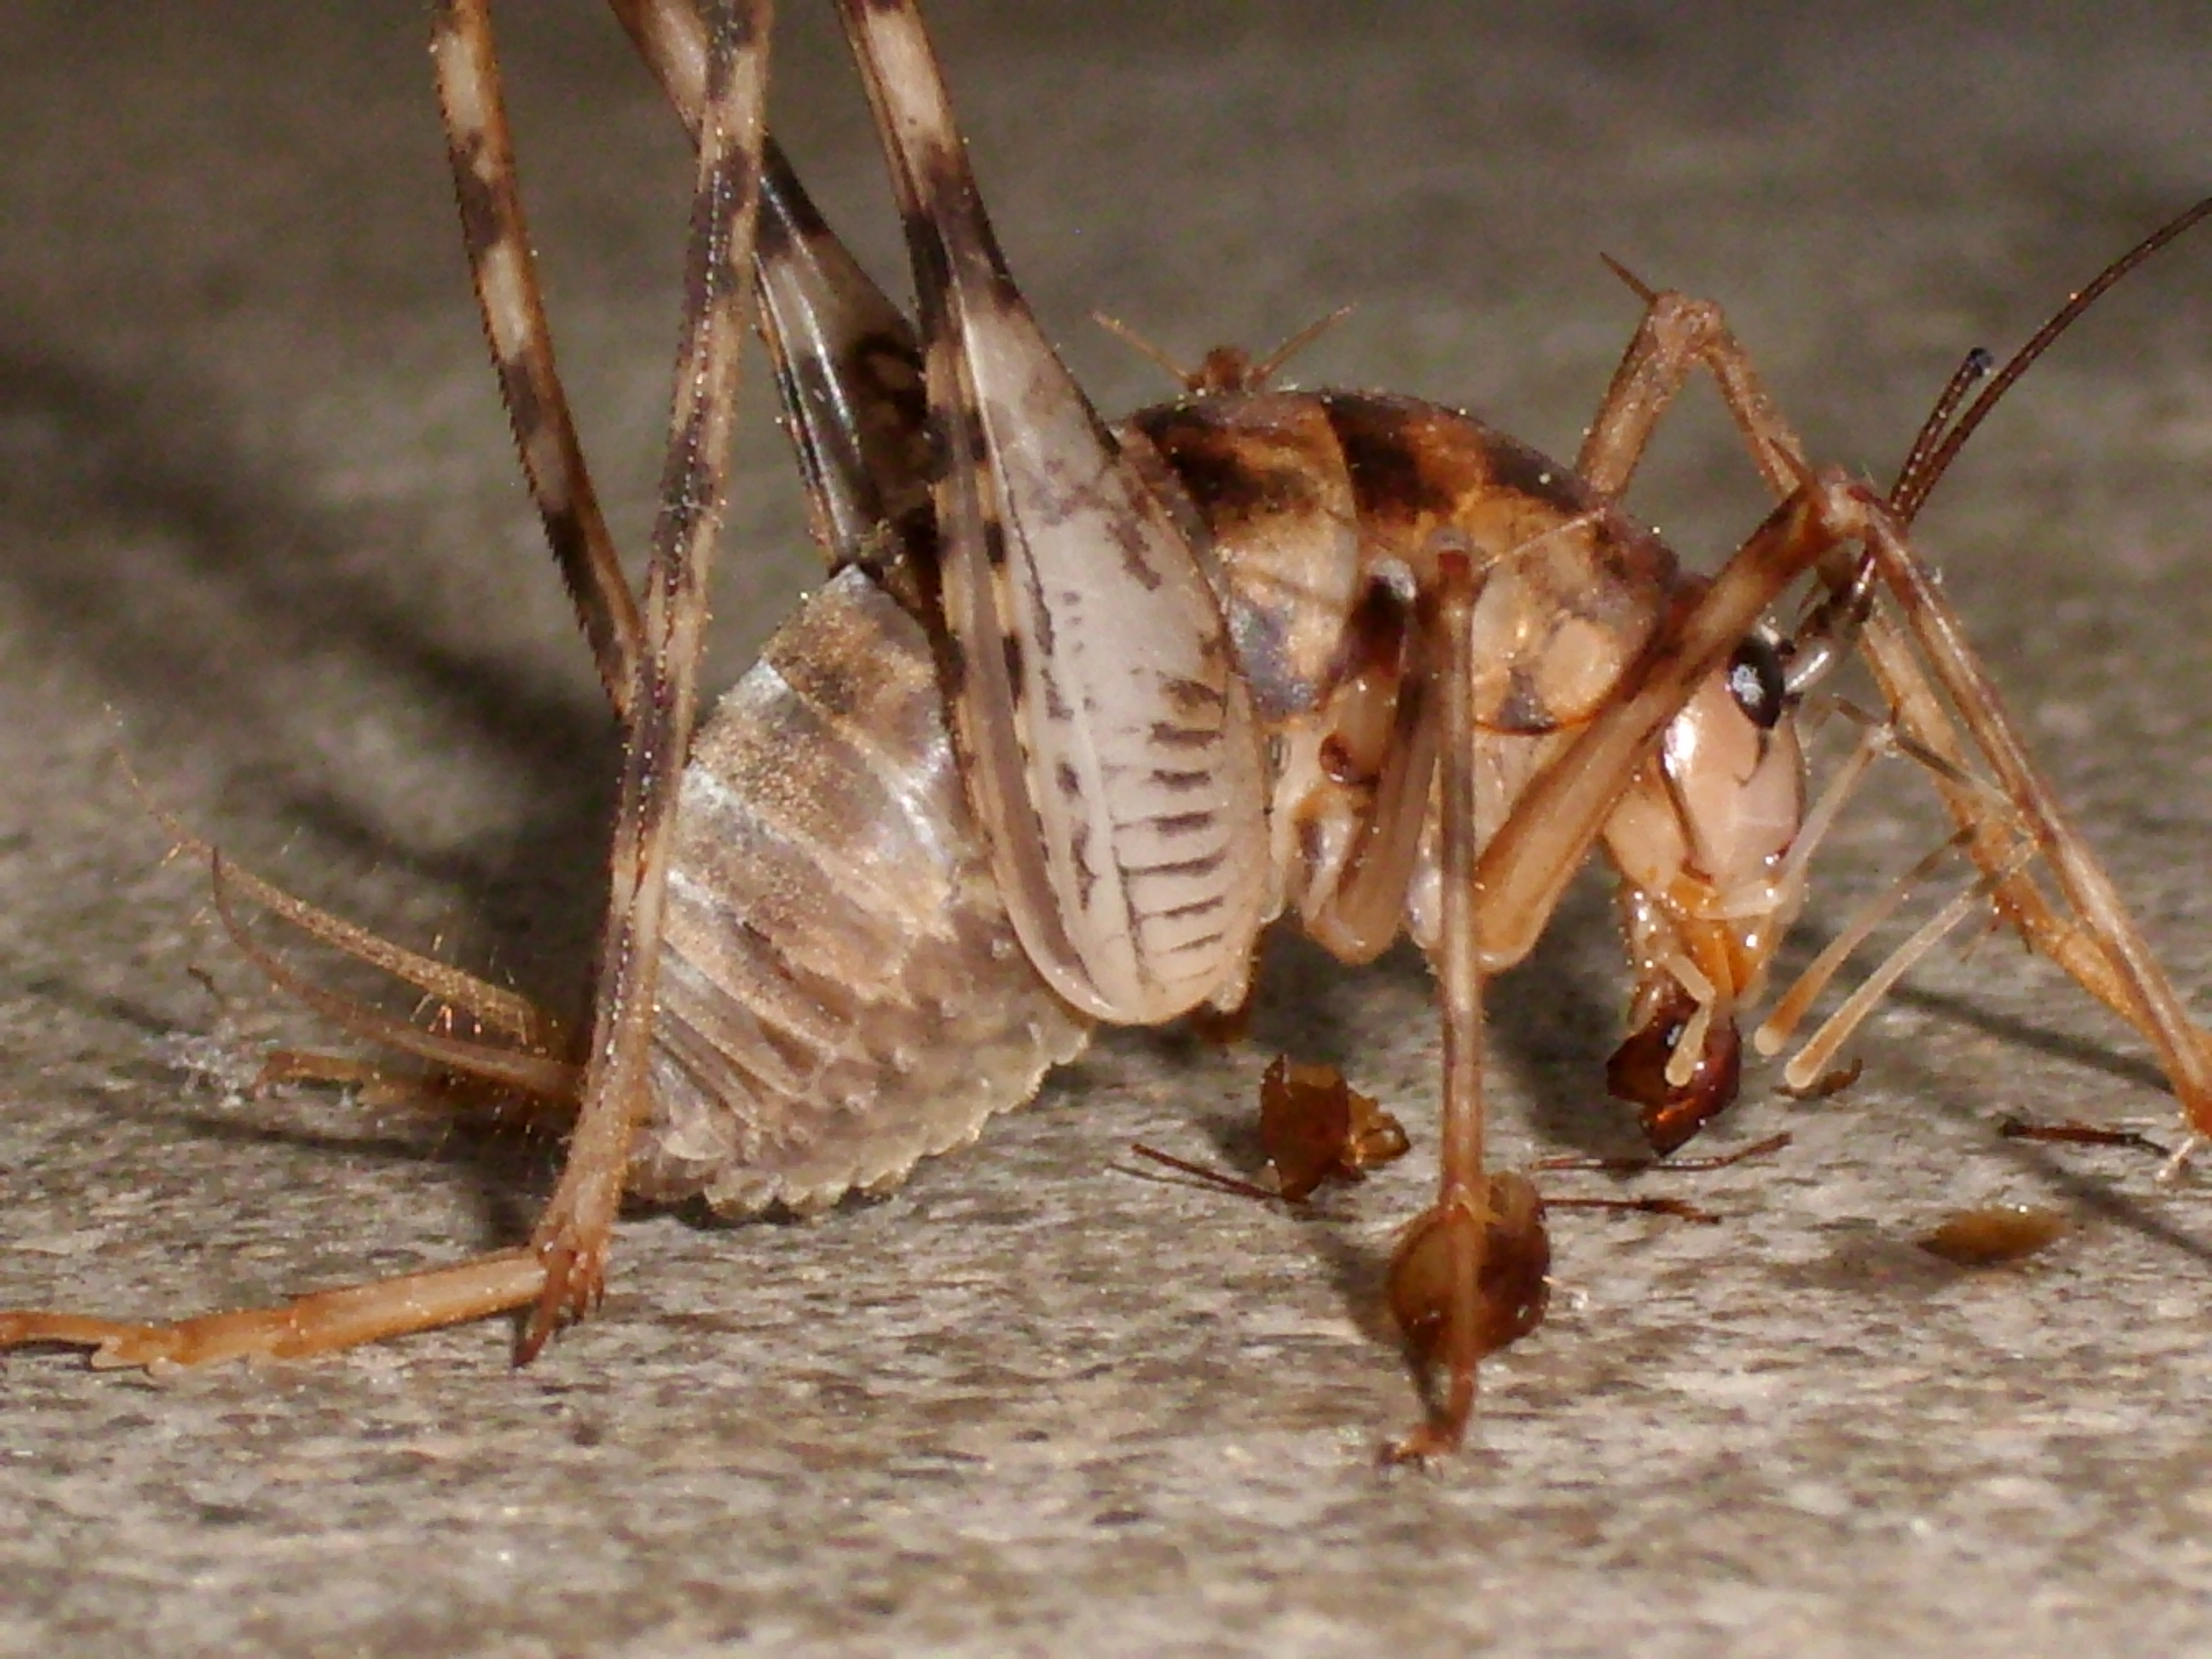 file cave cricket 01 jpg wikimedia commons 3648x2736 jpeg